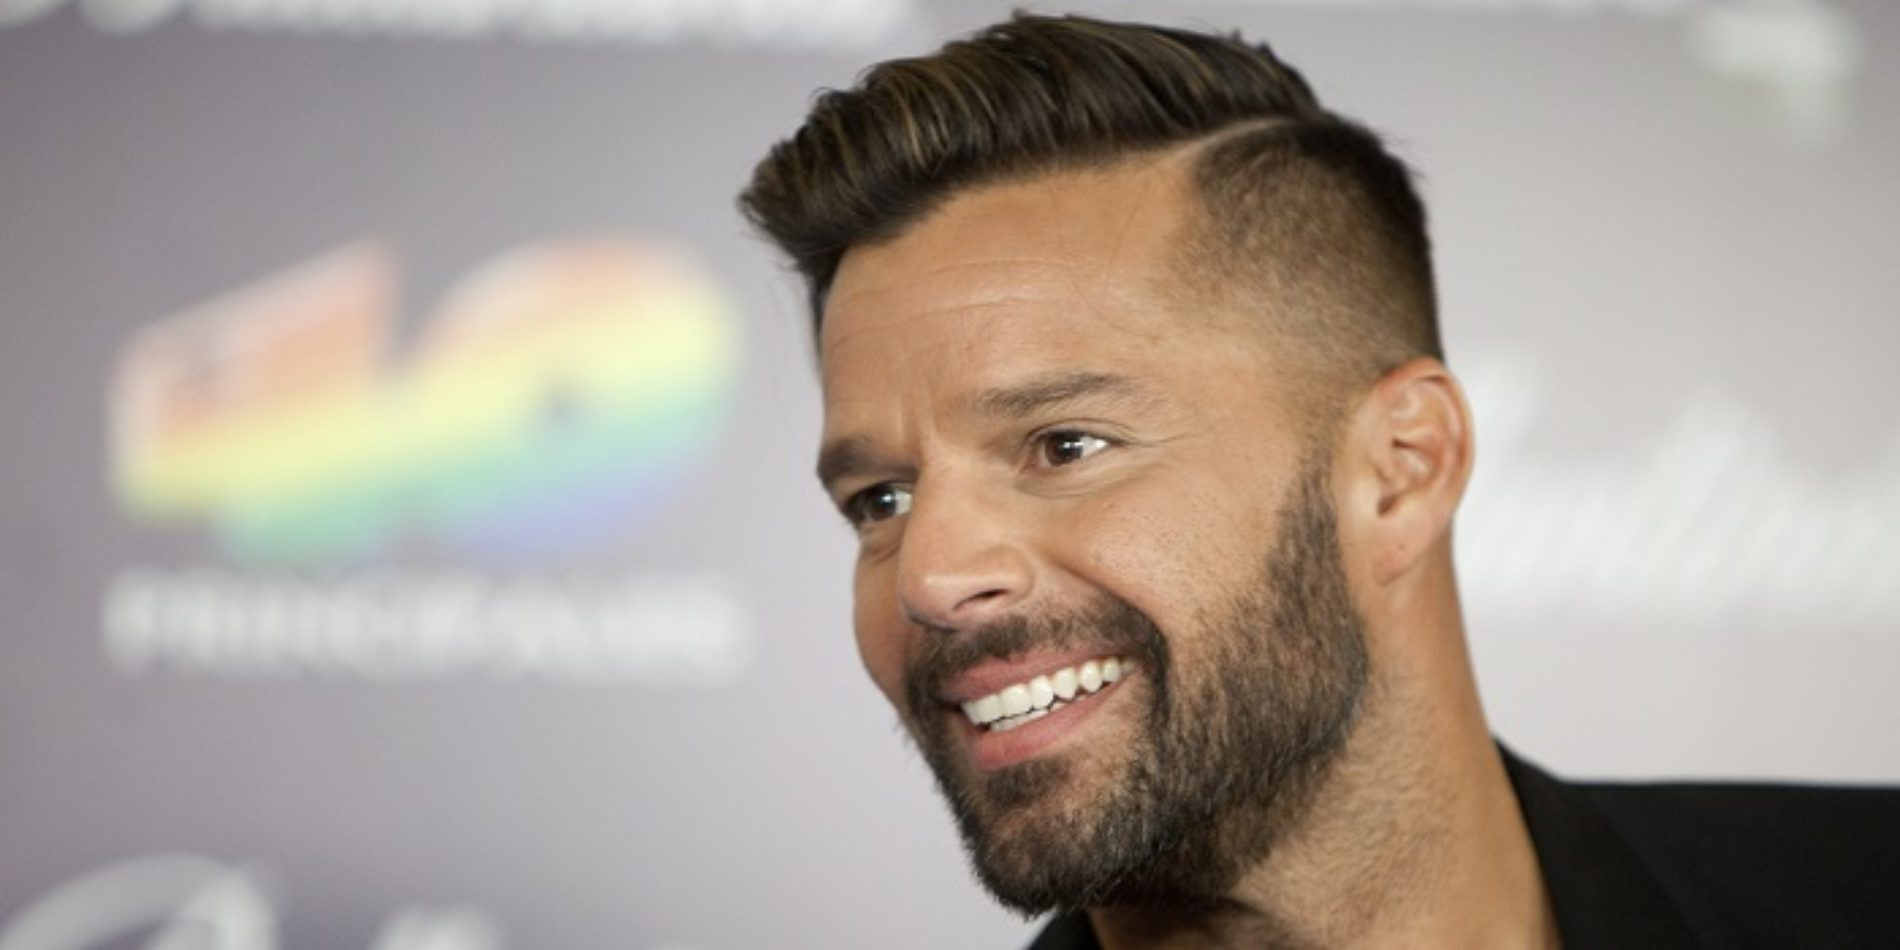 Ricky Martin 'Open' to Sex With Women, But Doesn't See Himself As Bisexual